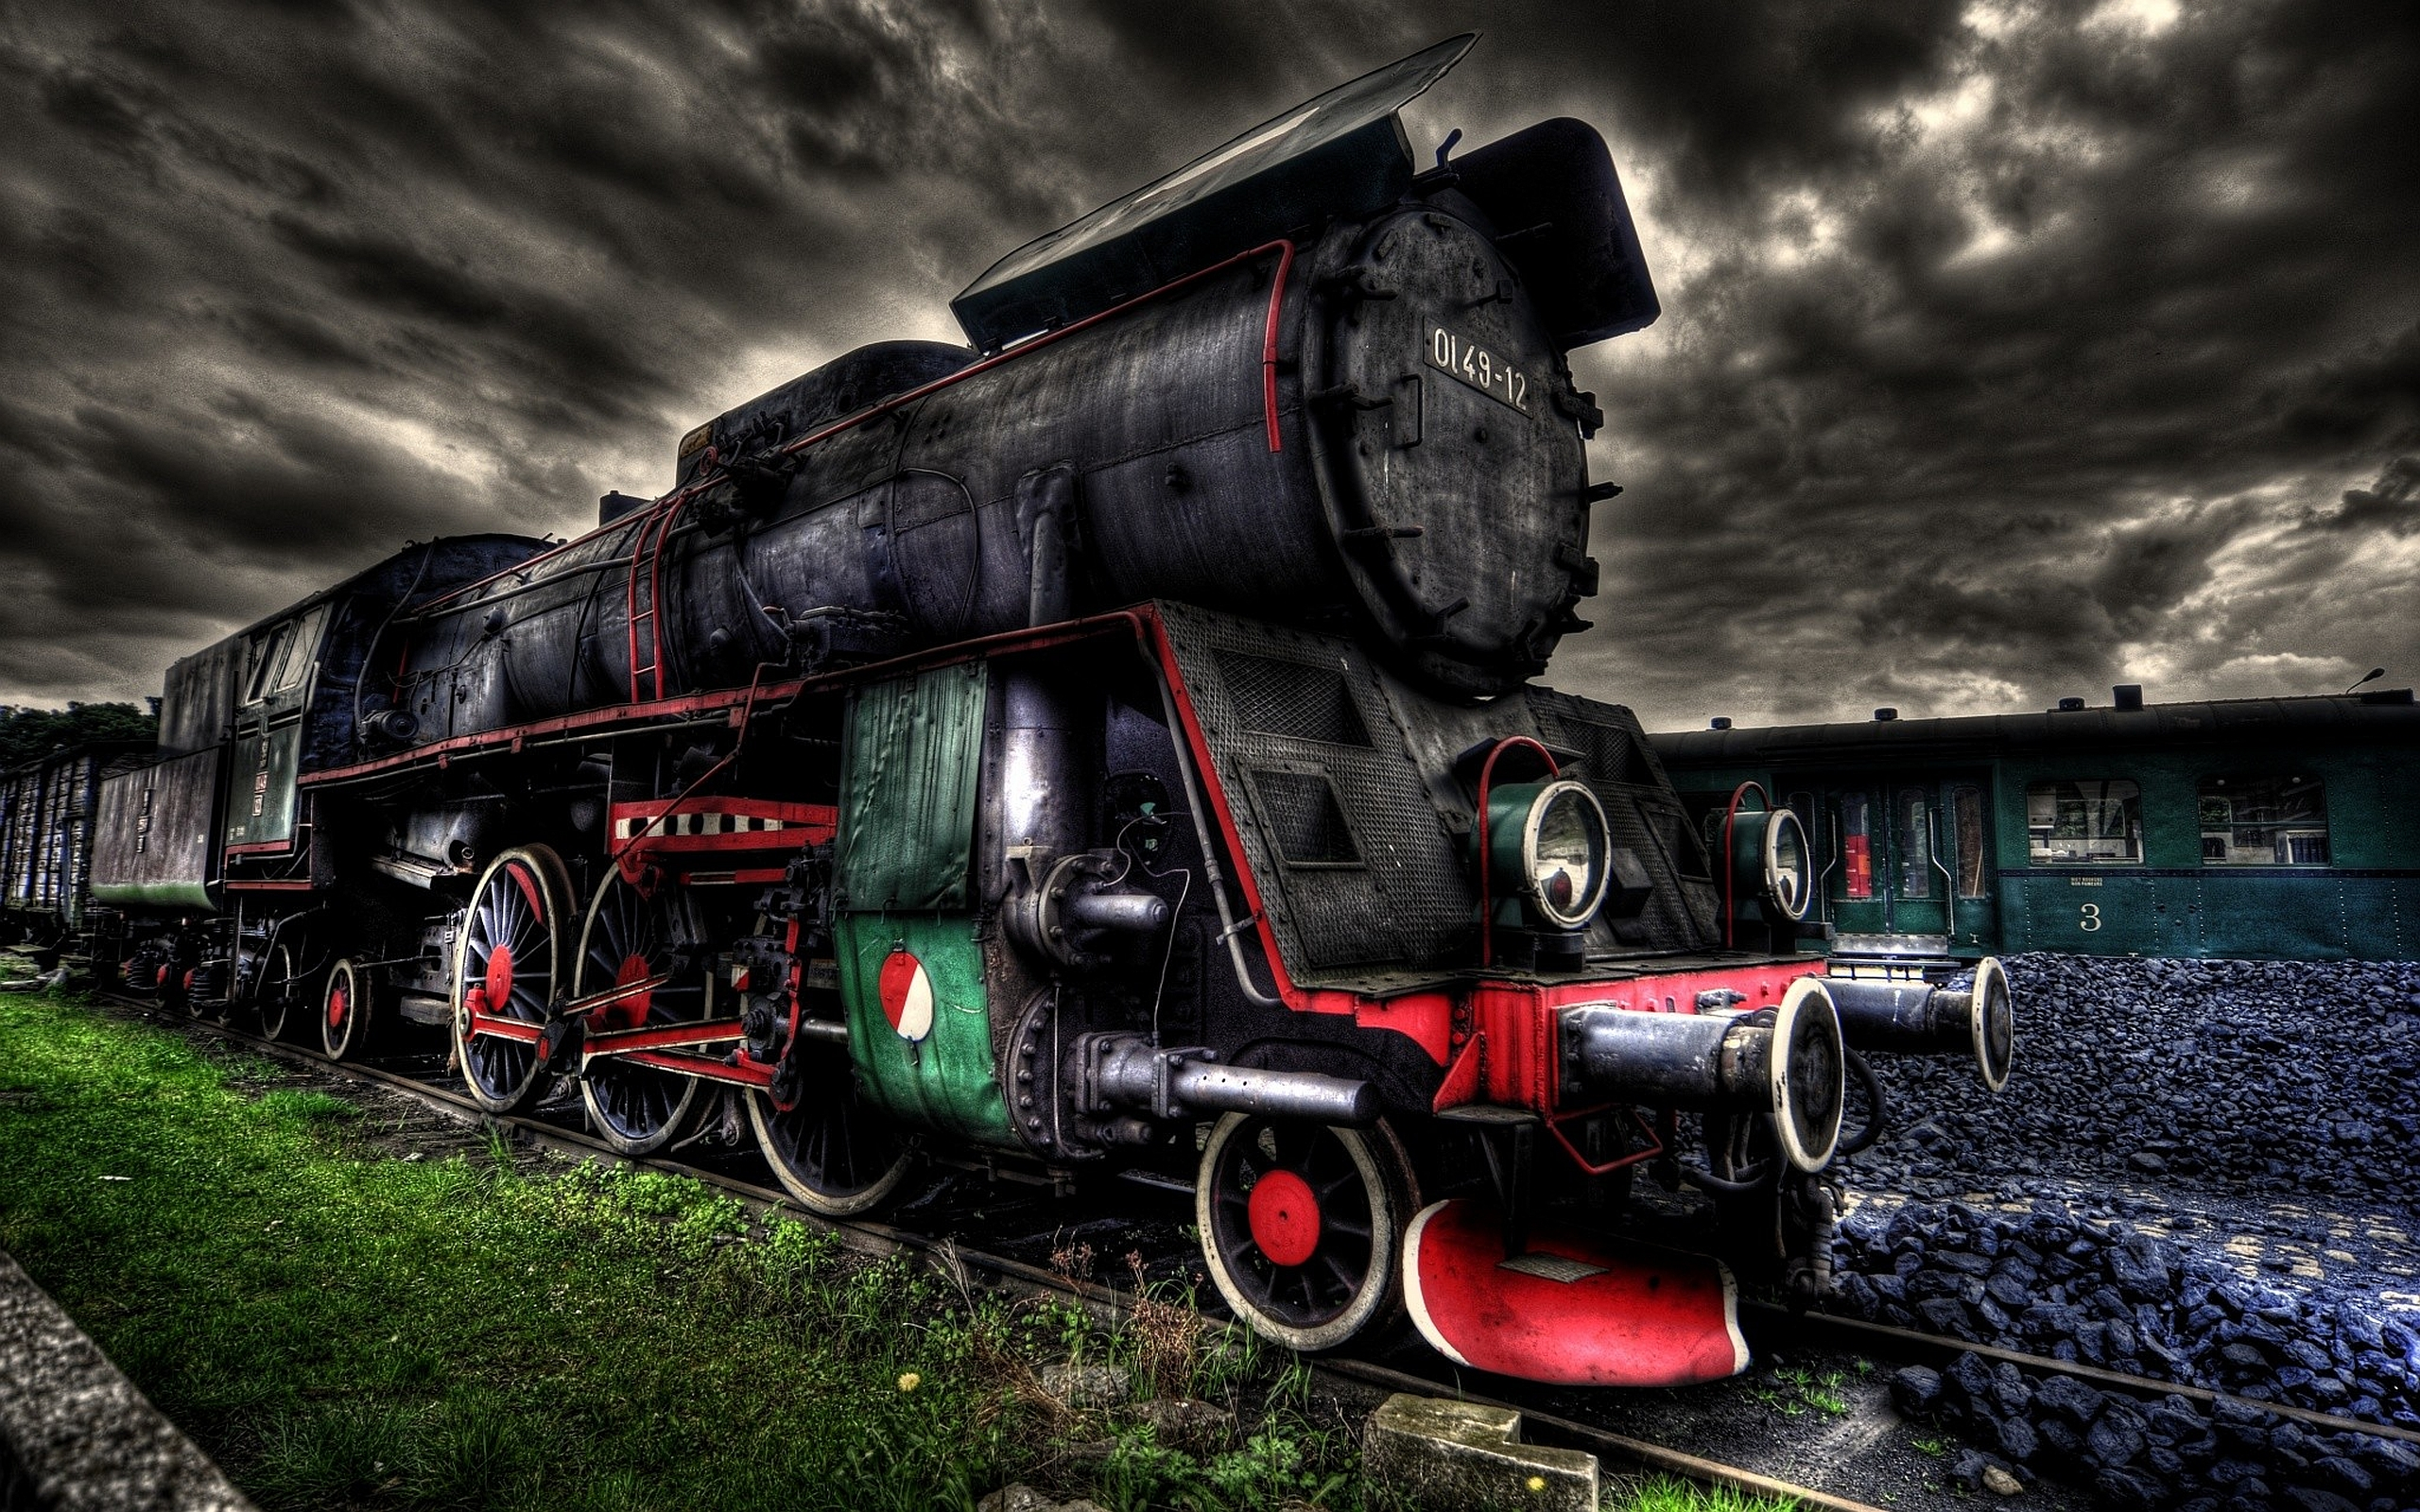 Amazing Train Pictures From Around The World